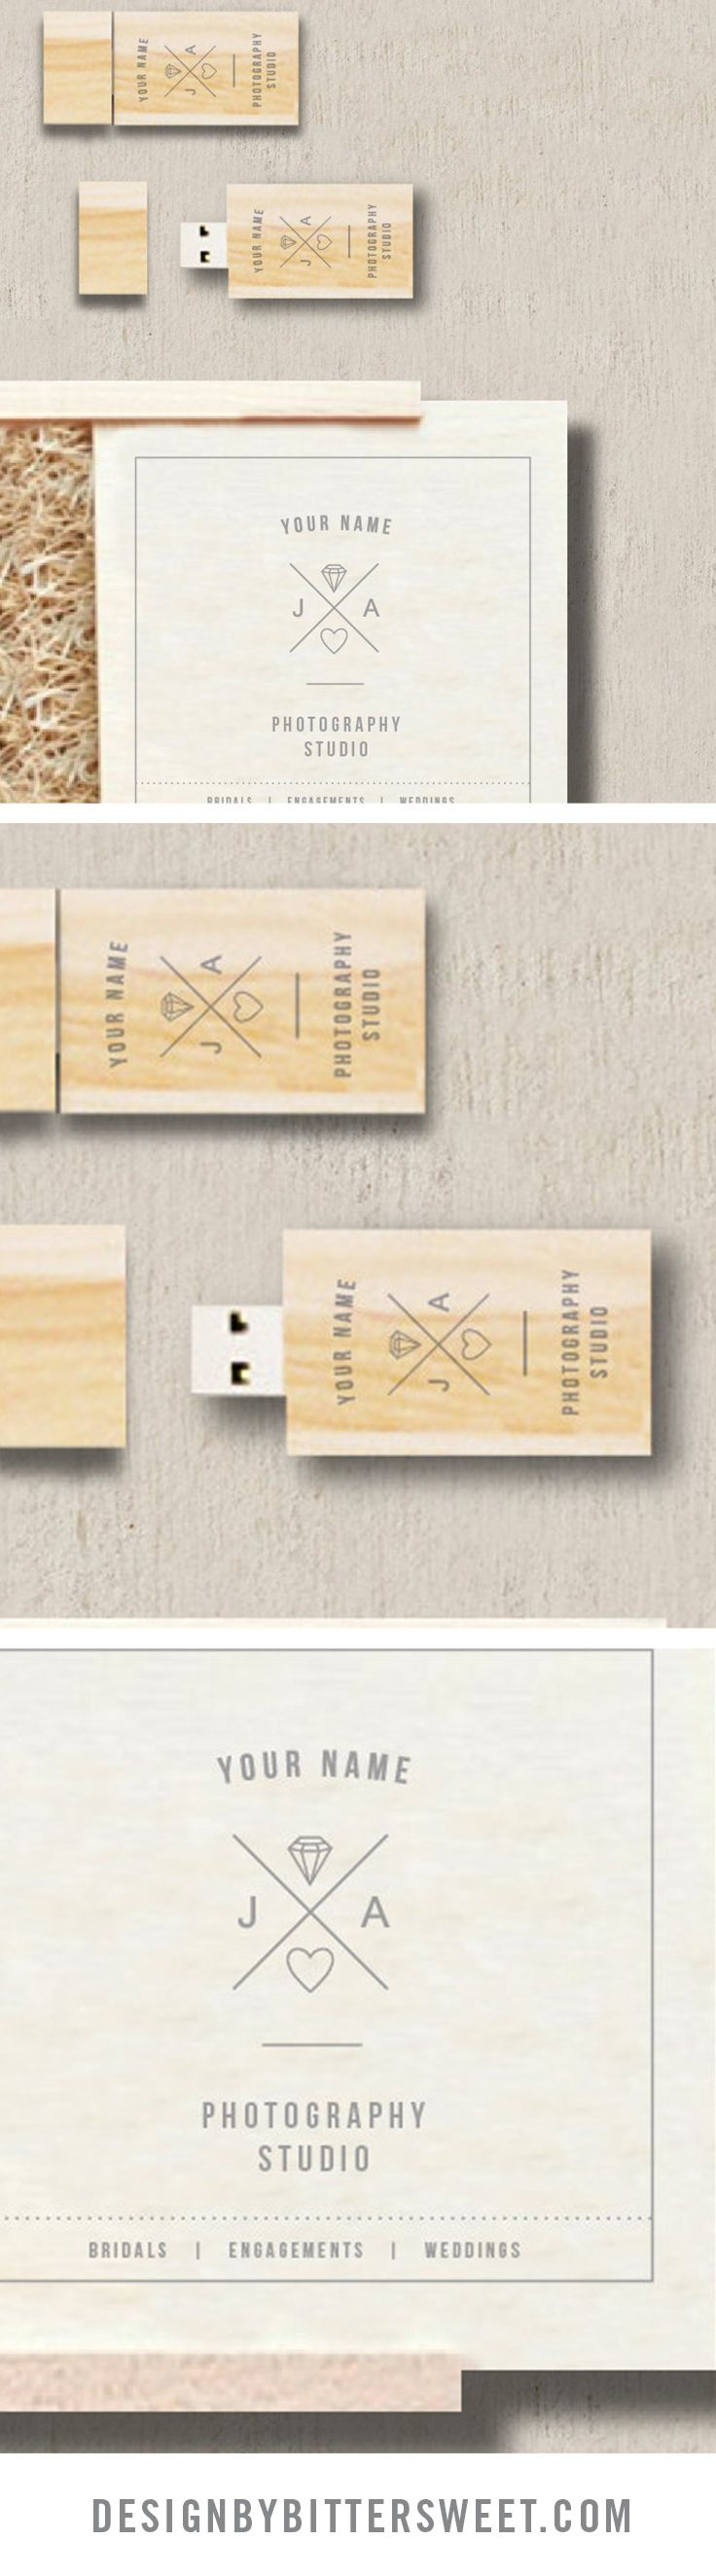 USB templates for professional photographers Branding and